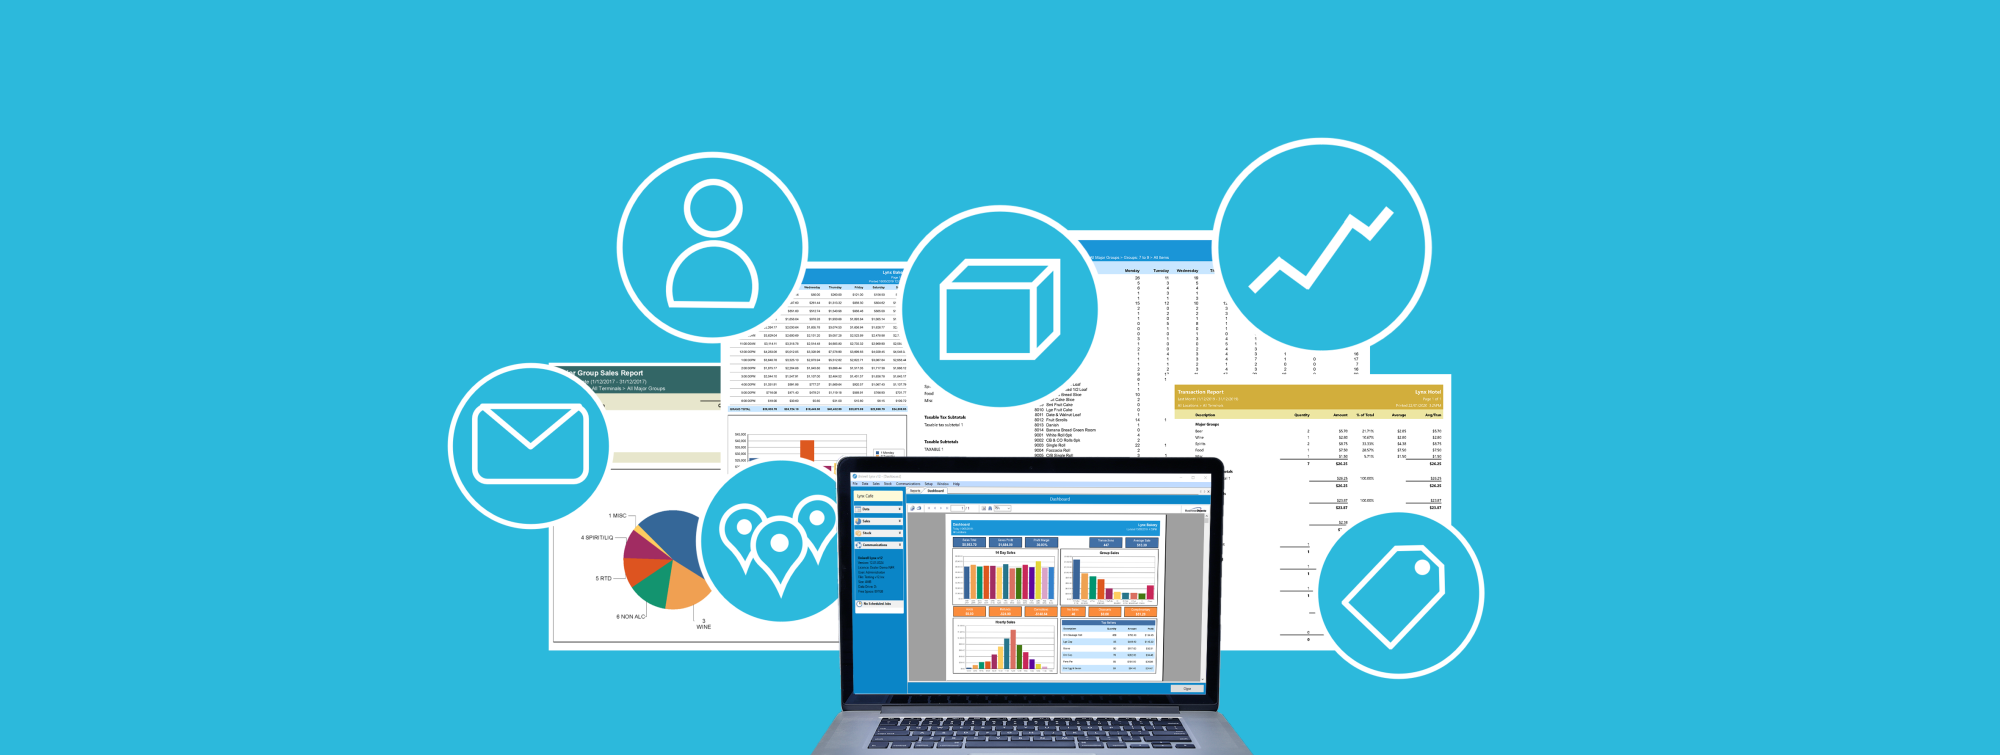 Lynx Software Manage Analyse Promote